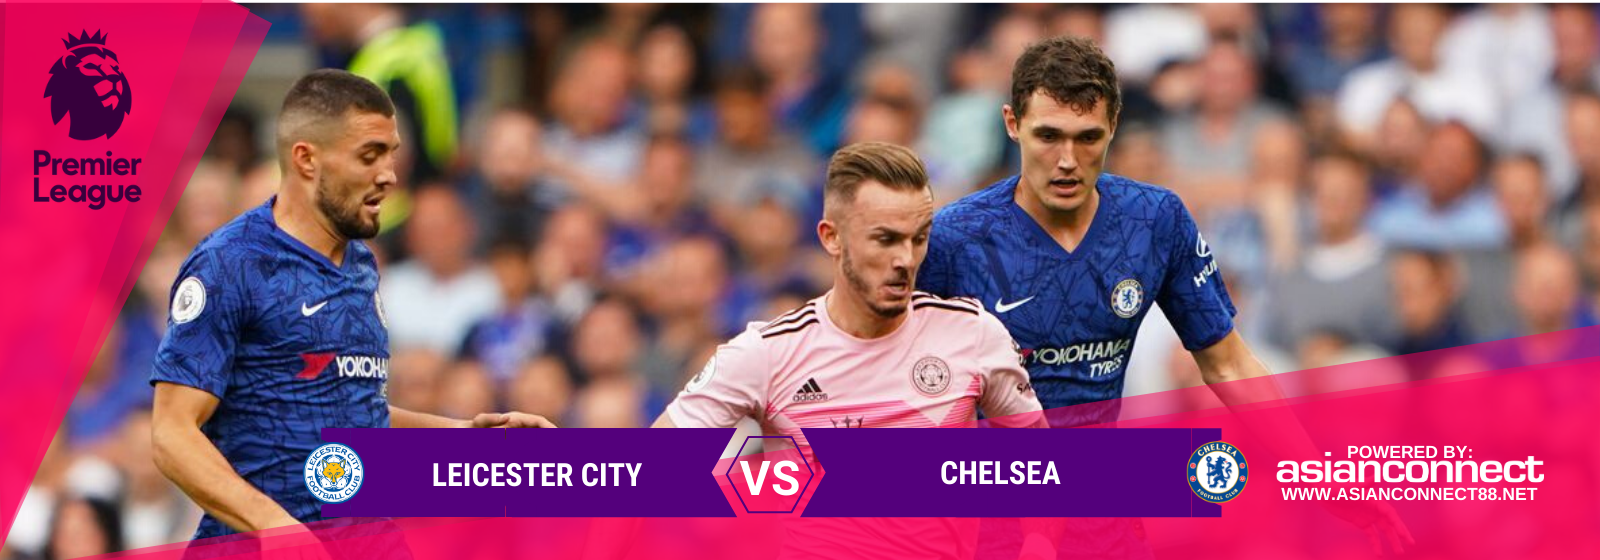 Asianconnect: Leicester City vs Chelsea Odds for February 01, 2020